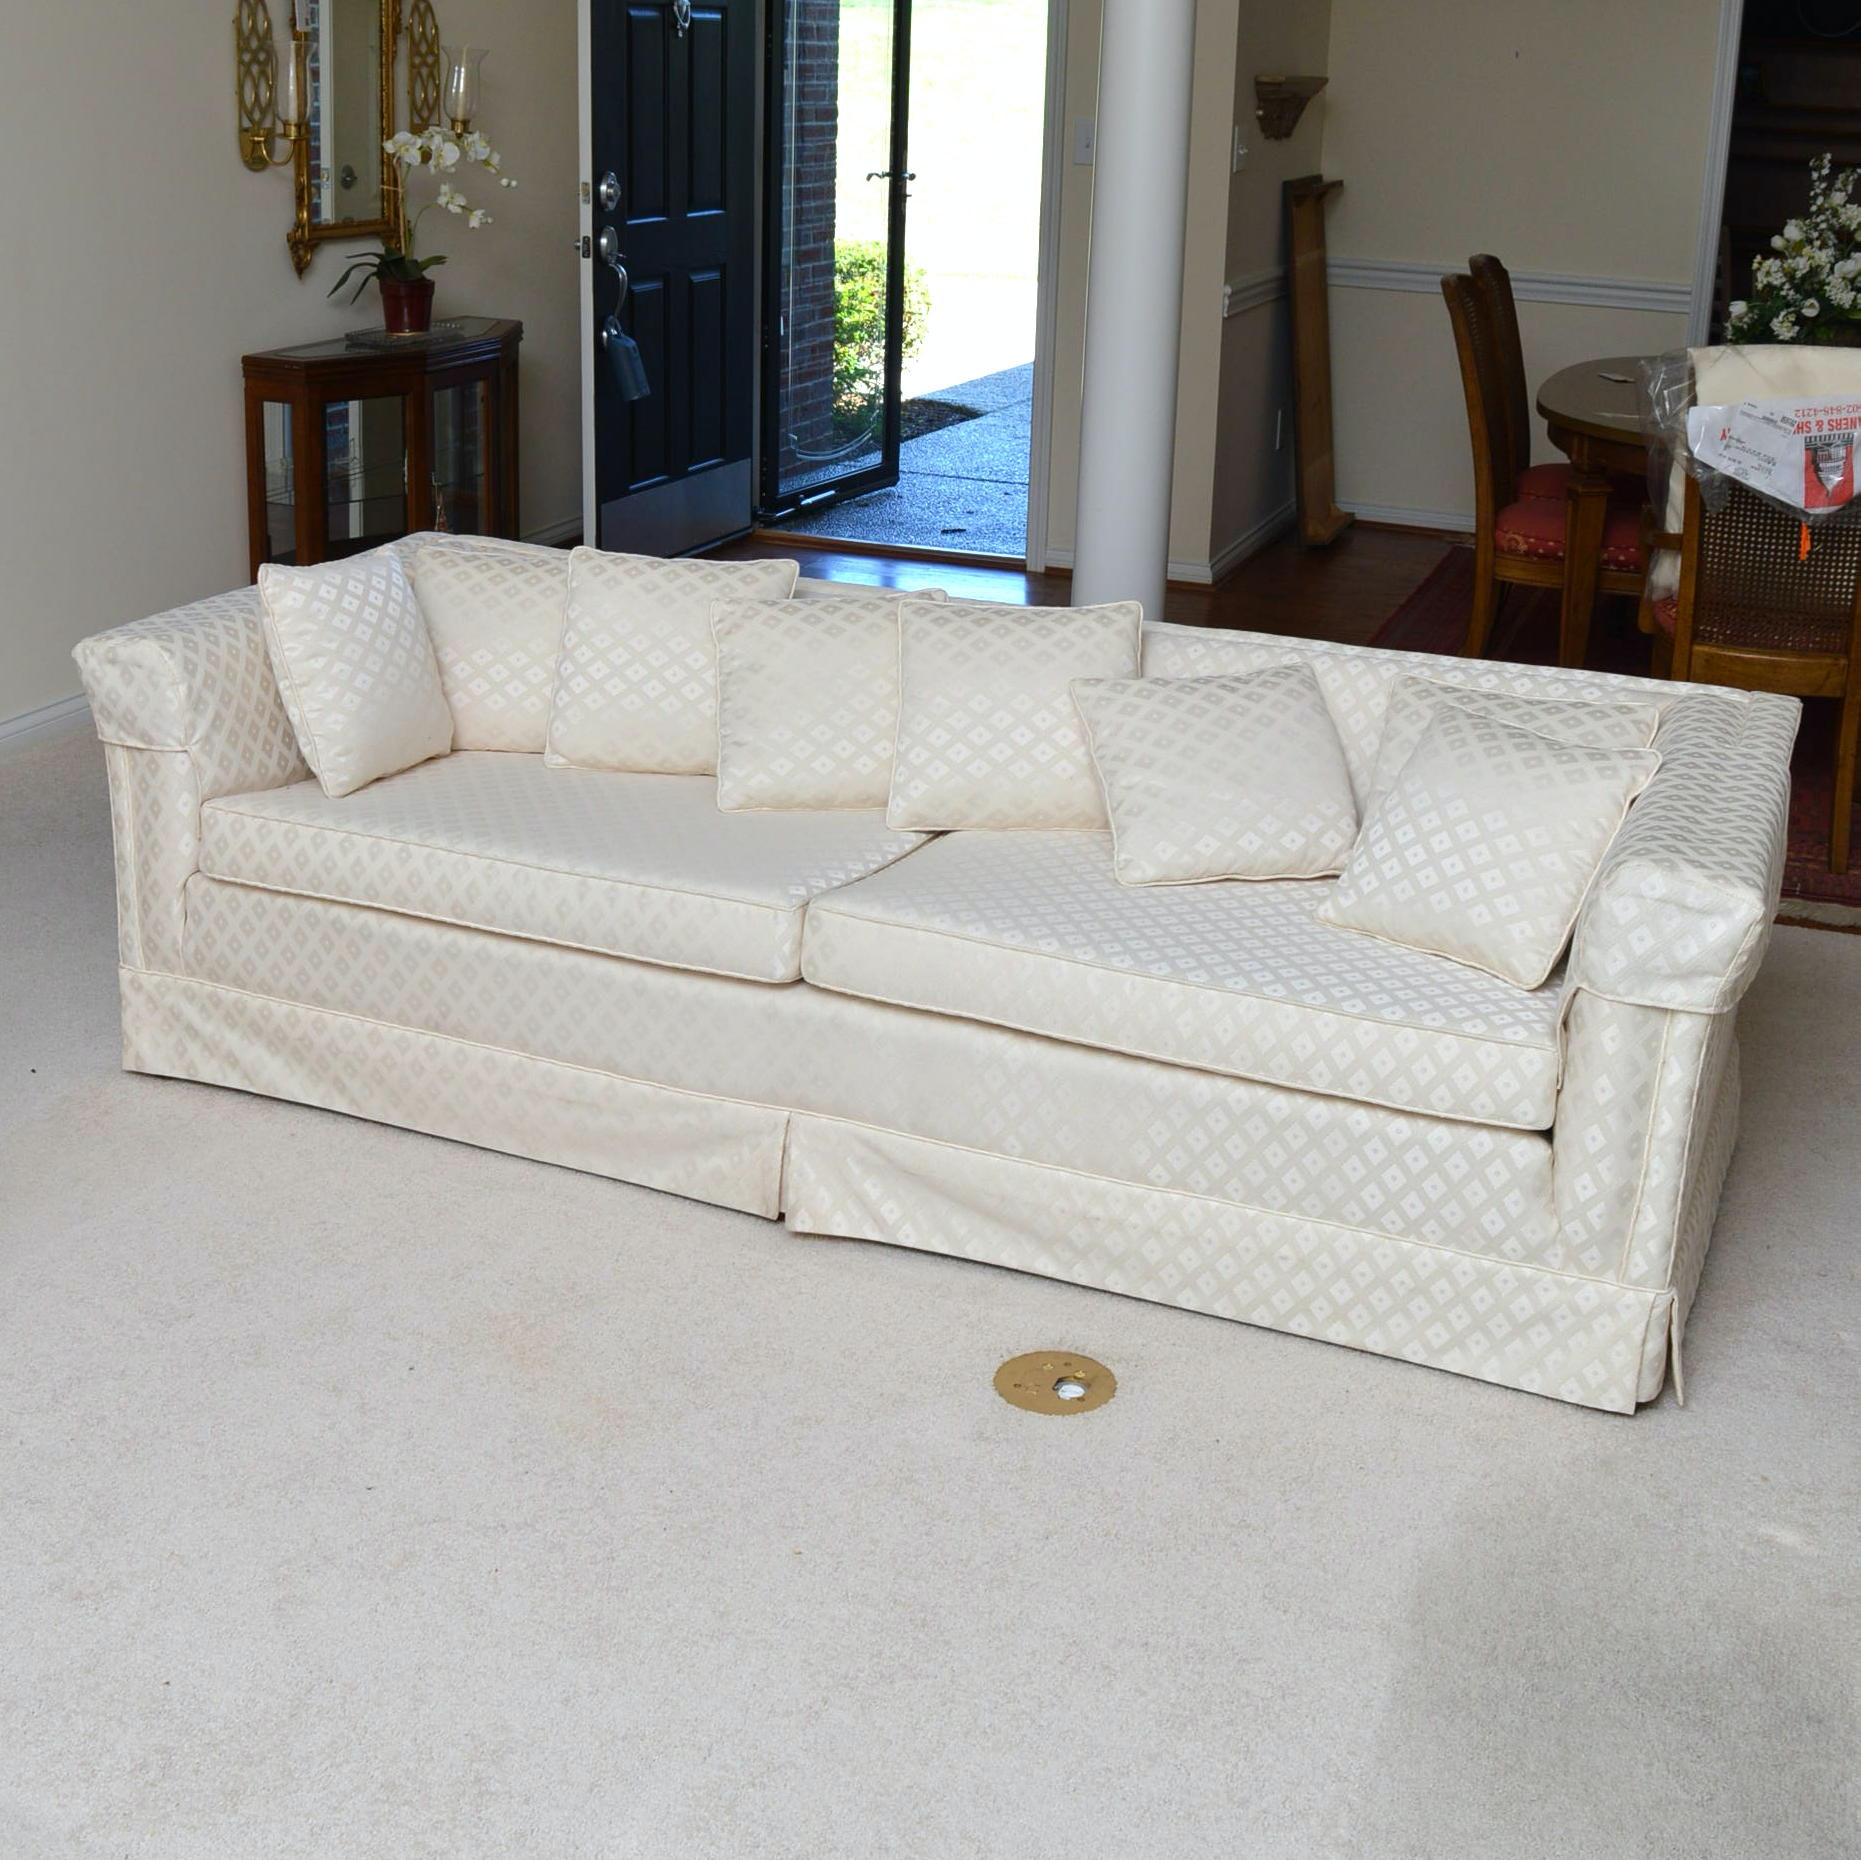 Vintage Upholstered Sofa